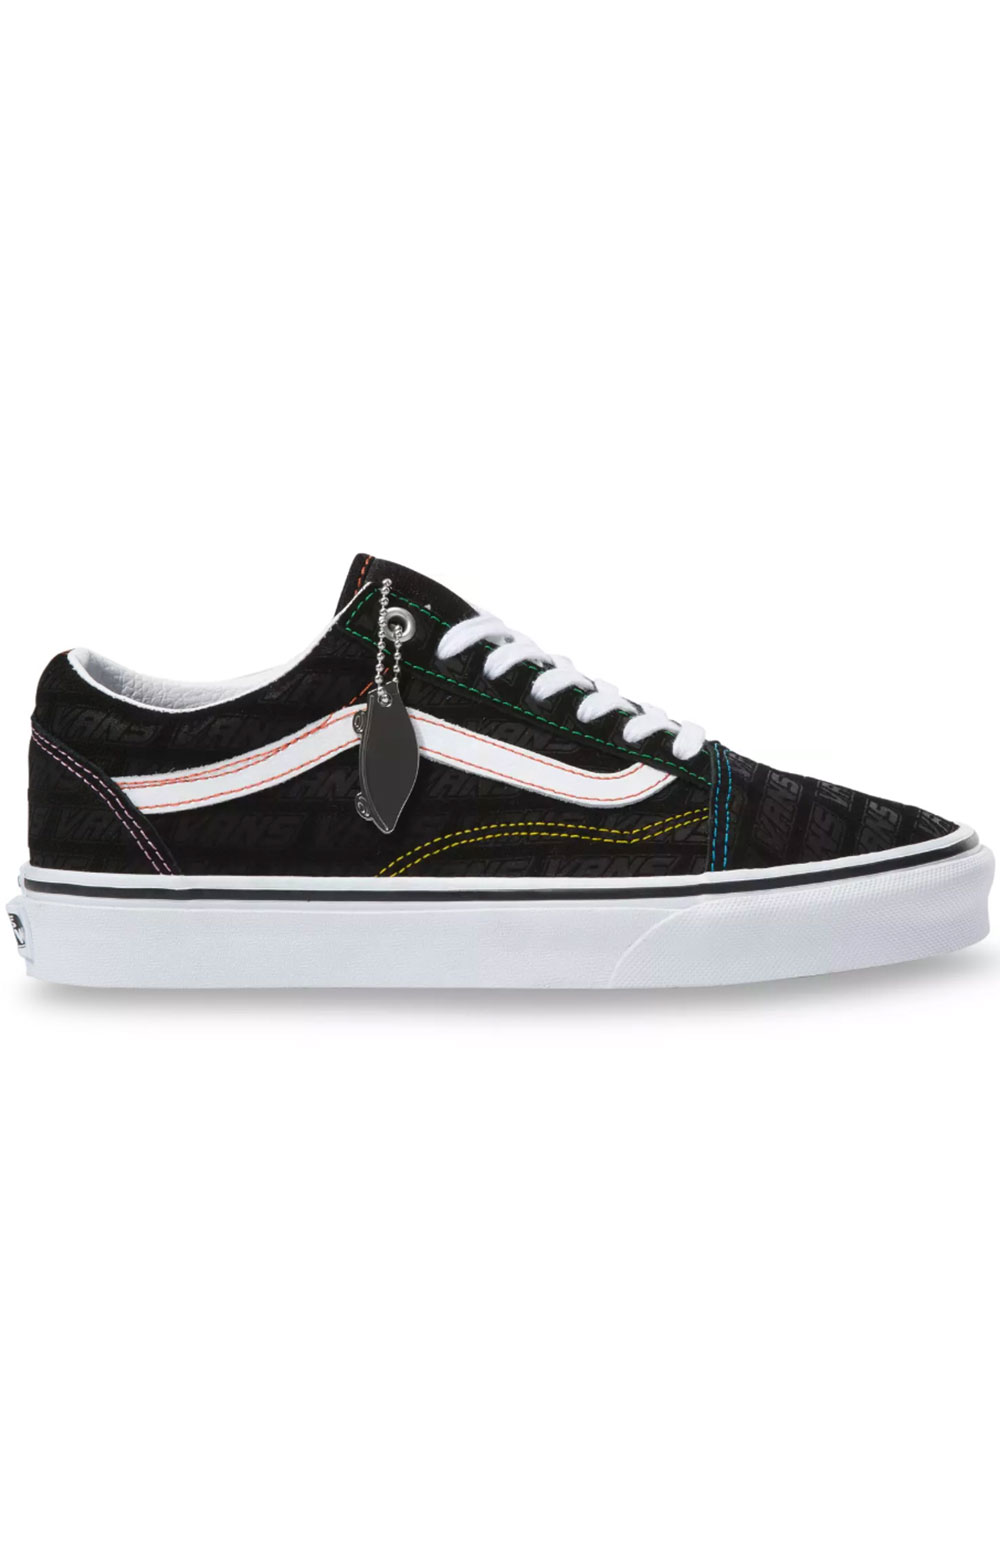 (U3BX00) Vans Emboss Old Skool Shoes - Black/True White